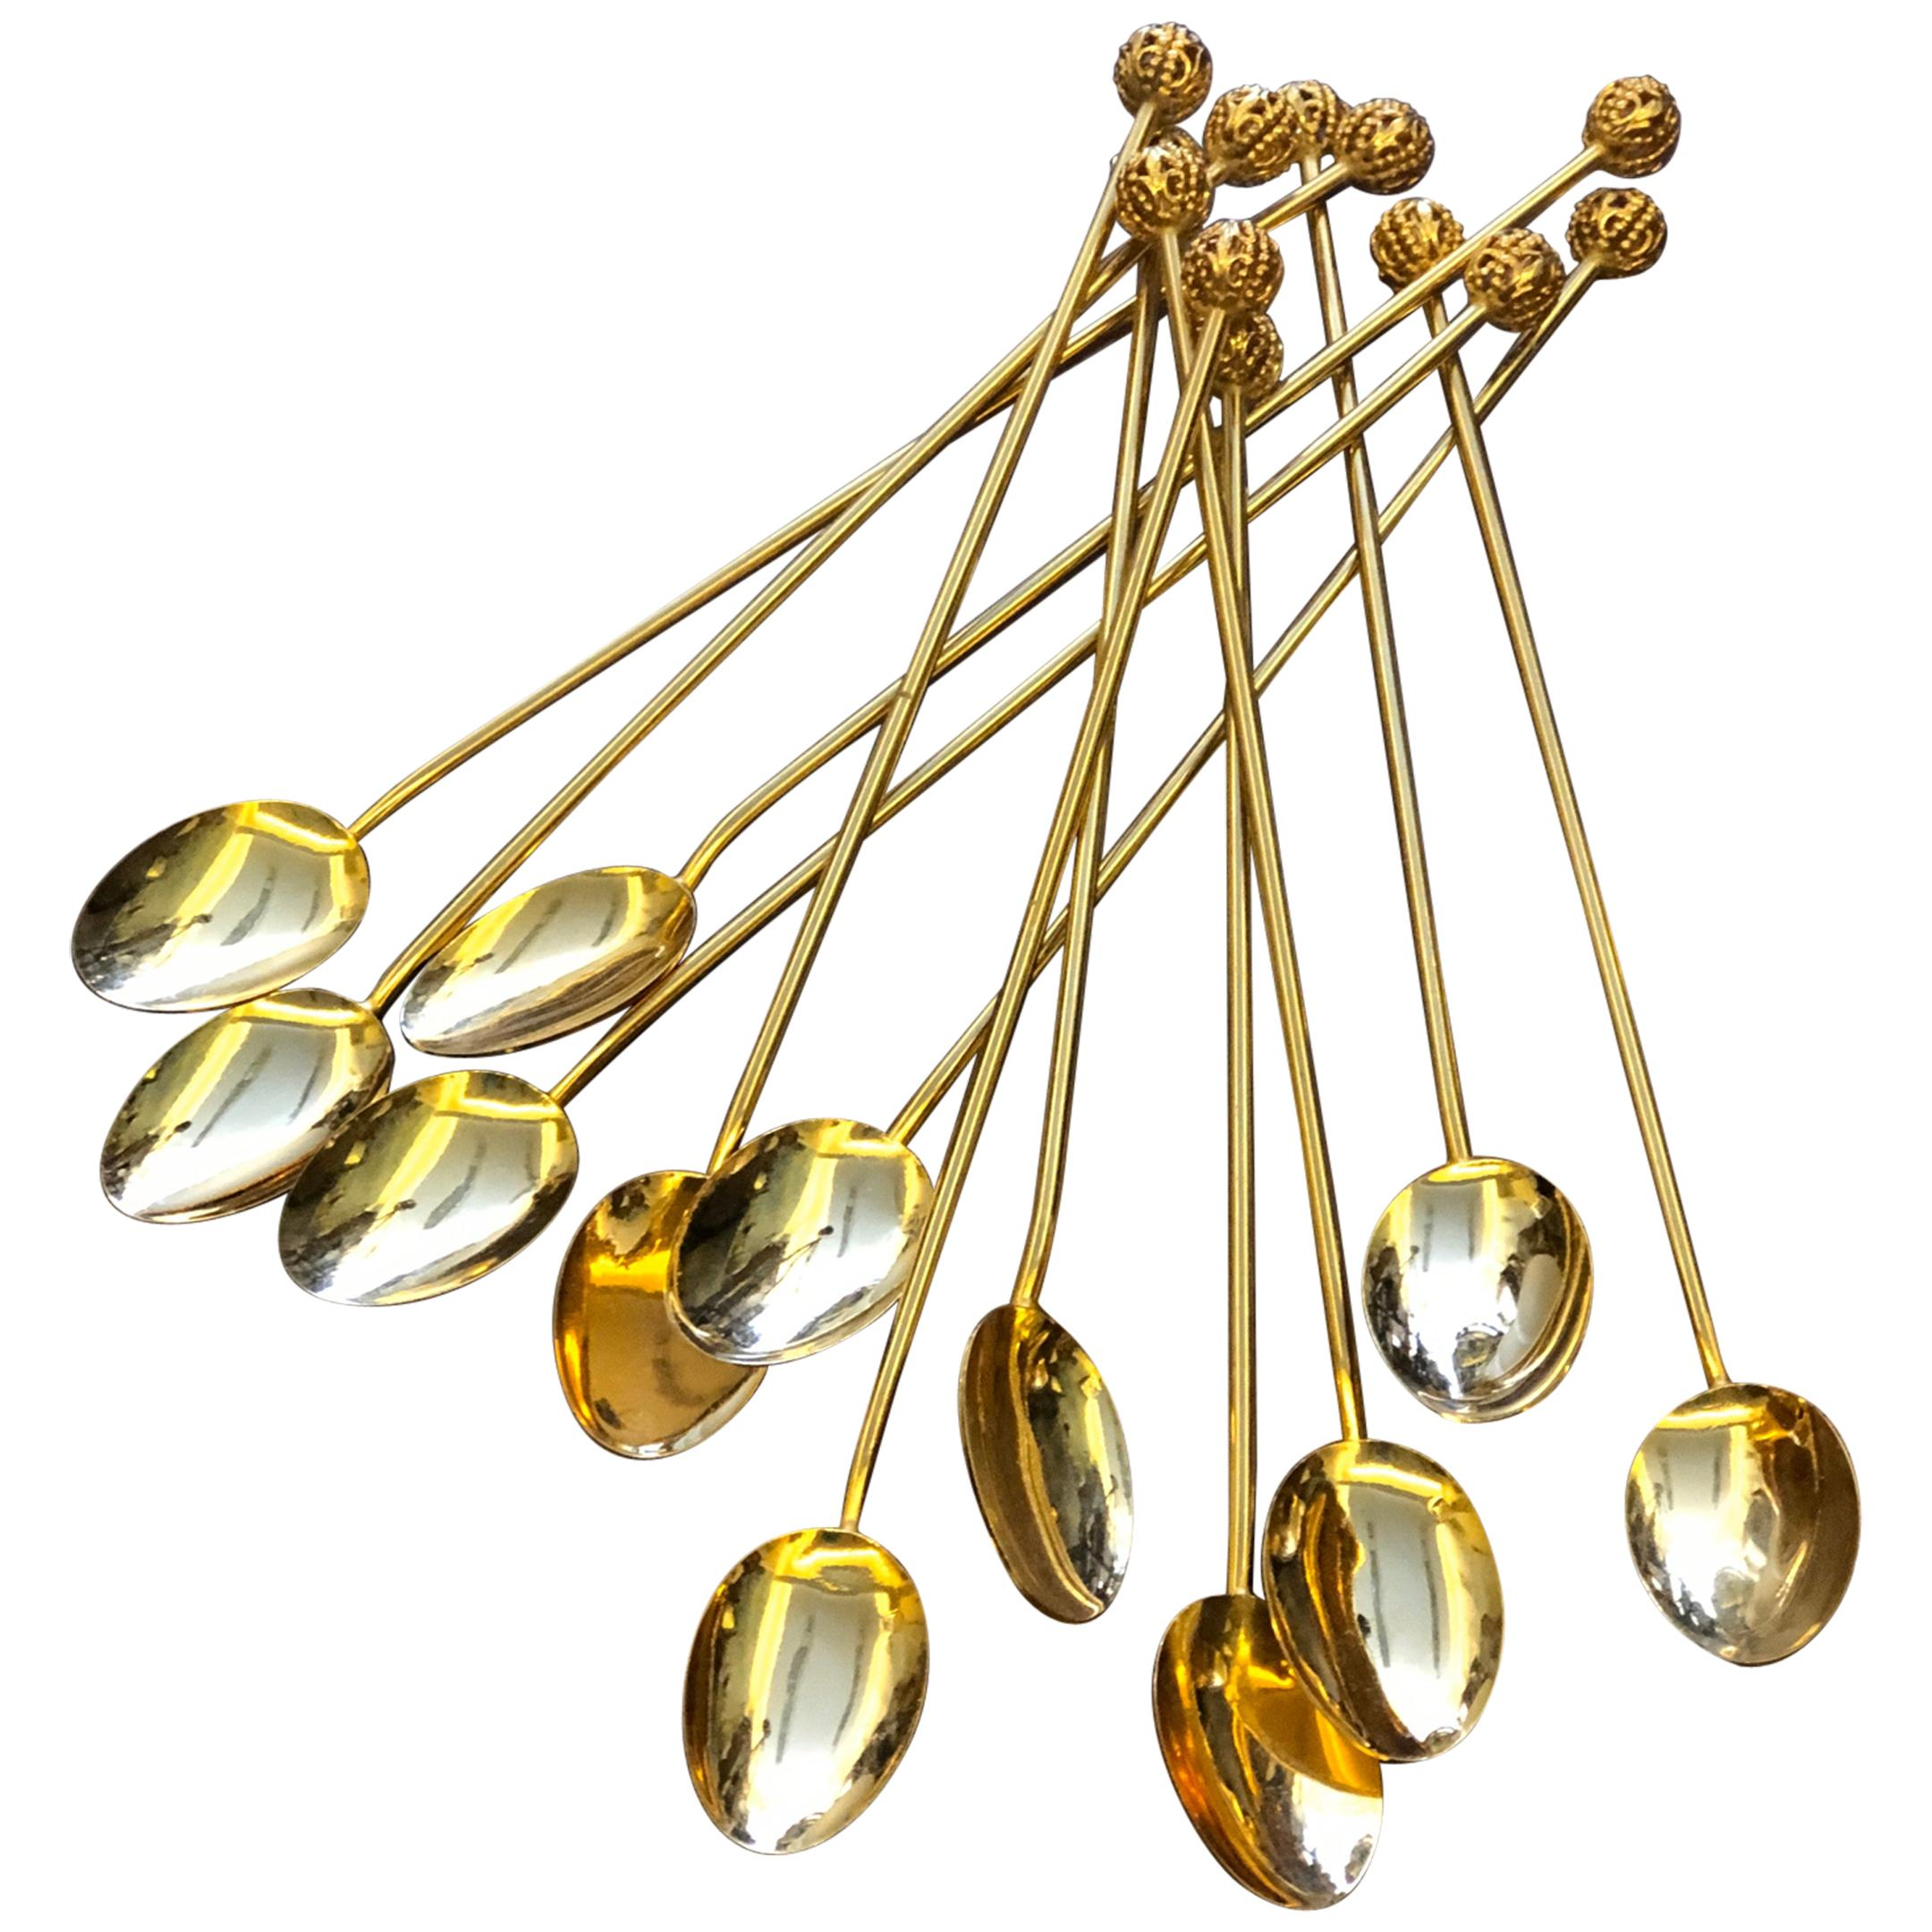 20th Century French Set of Twelve Gold-Plated Ice-cream Spoons